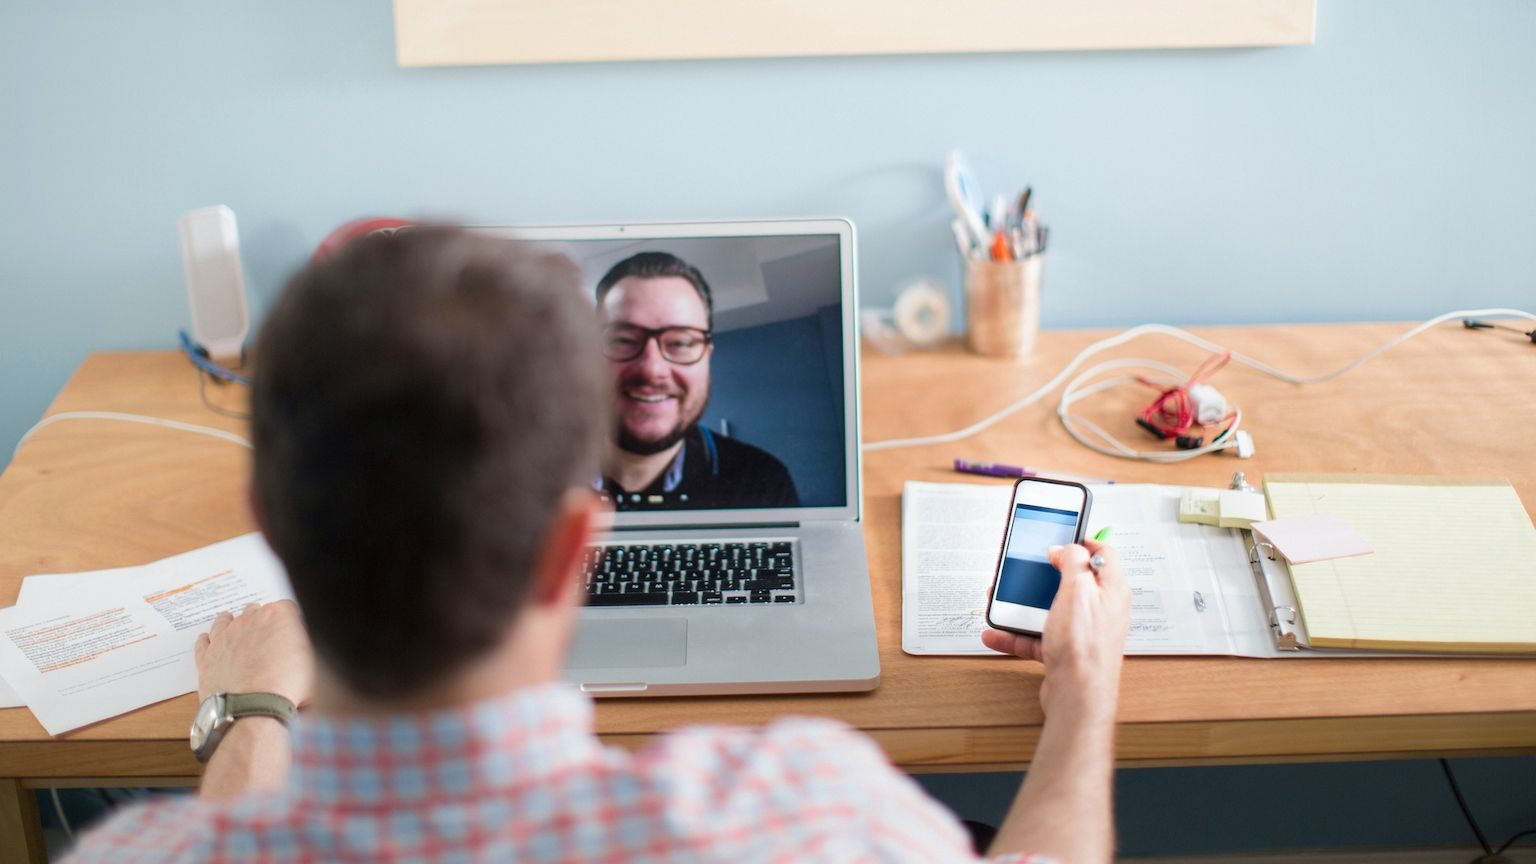 Two men having a video conference call.